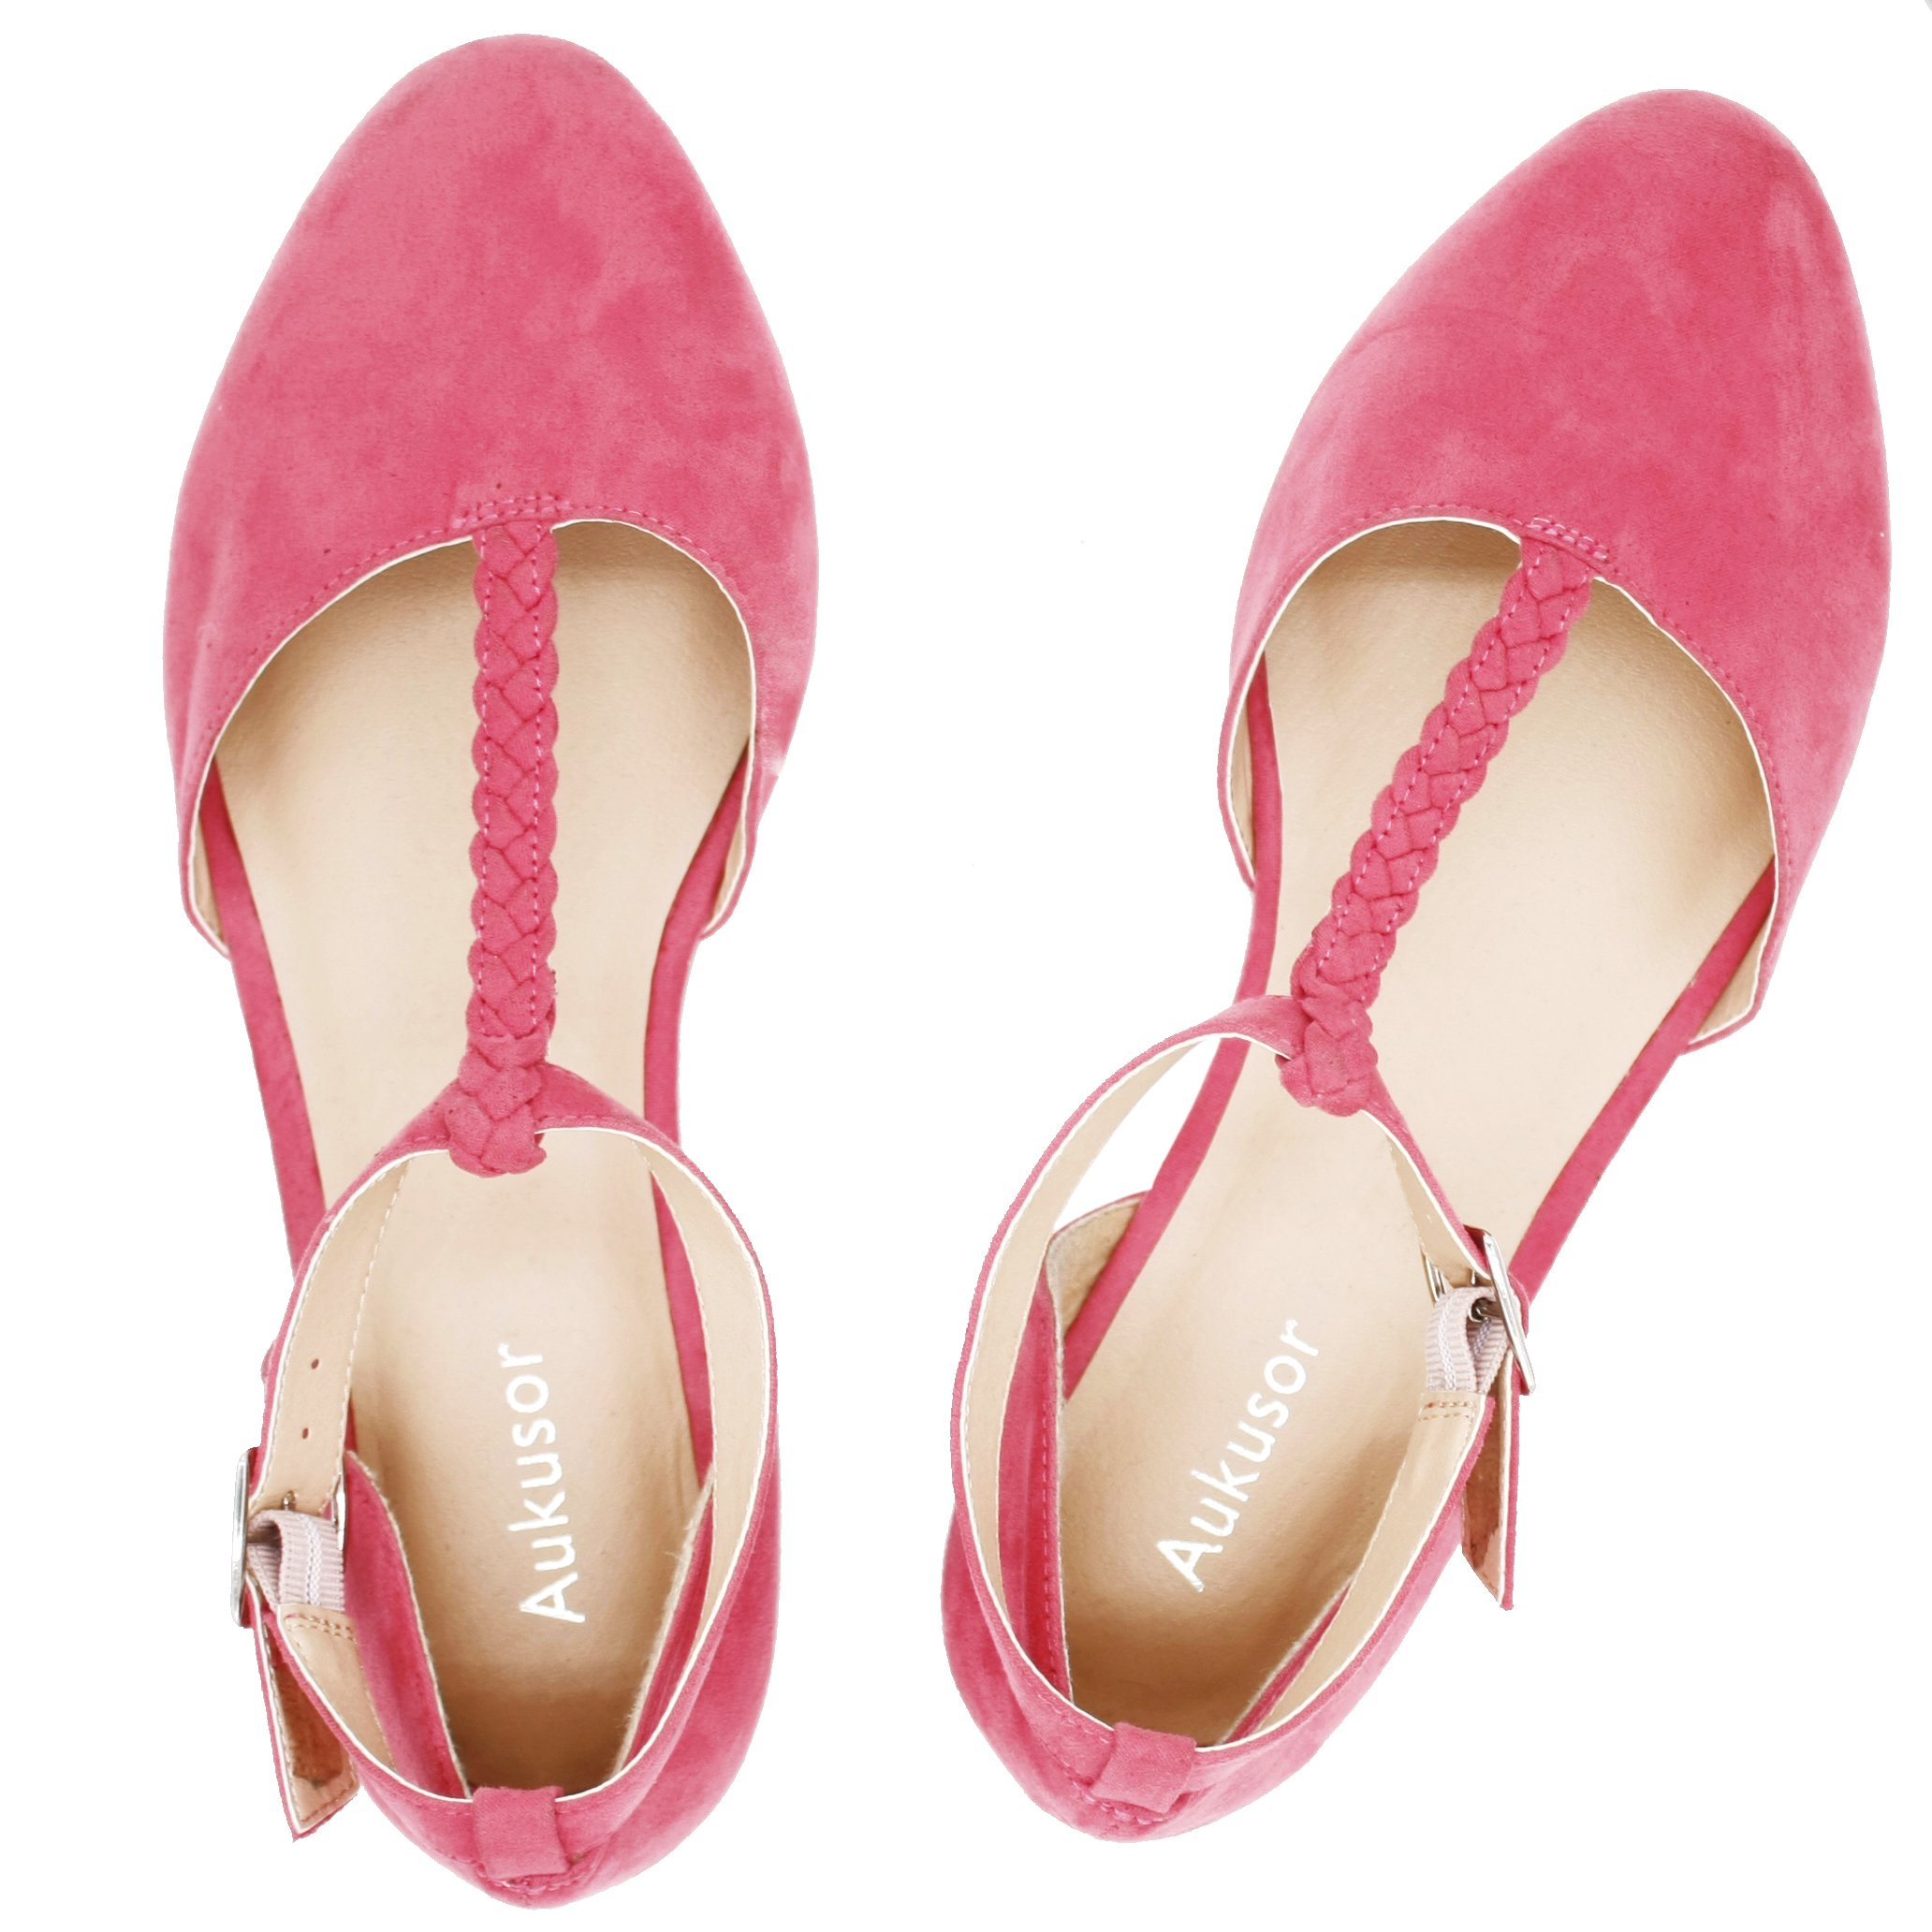 Aukusor Women's Wide Ballet Flat Shoes -T-Strap Comfort Light Pointed Toe Slip on Casual Shoes. (180315 Red 8W)